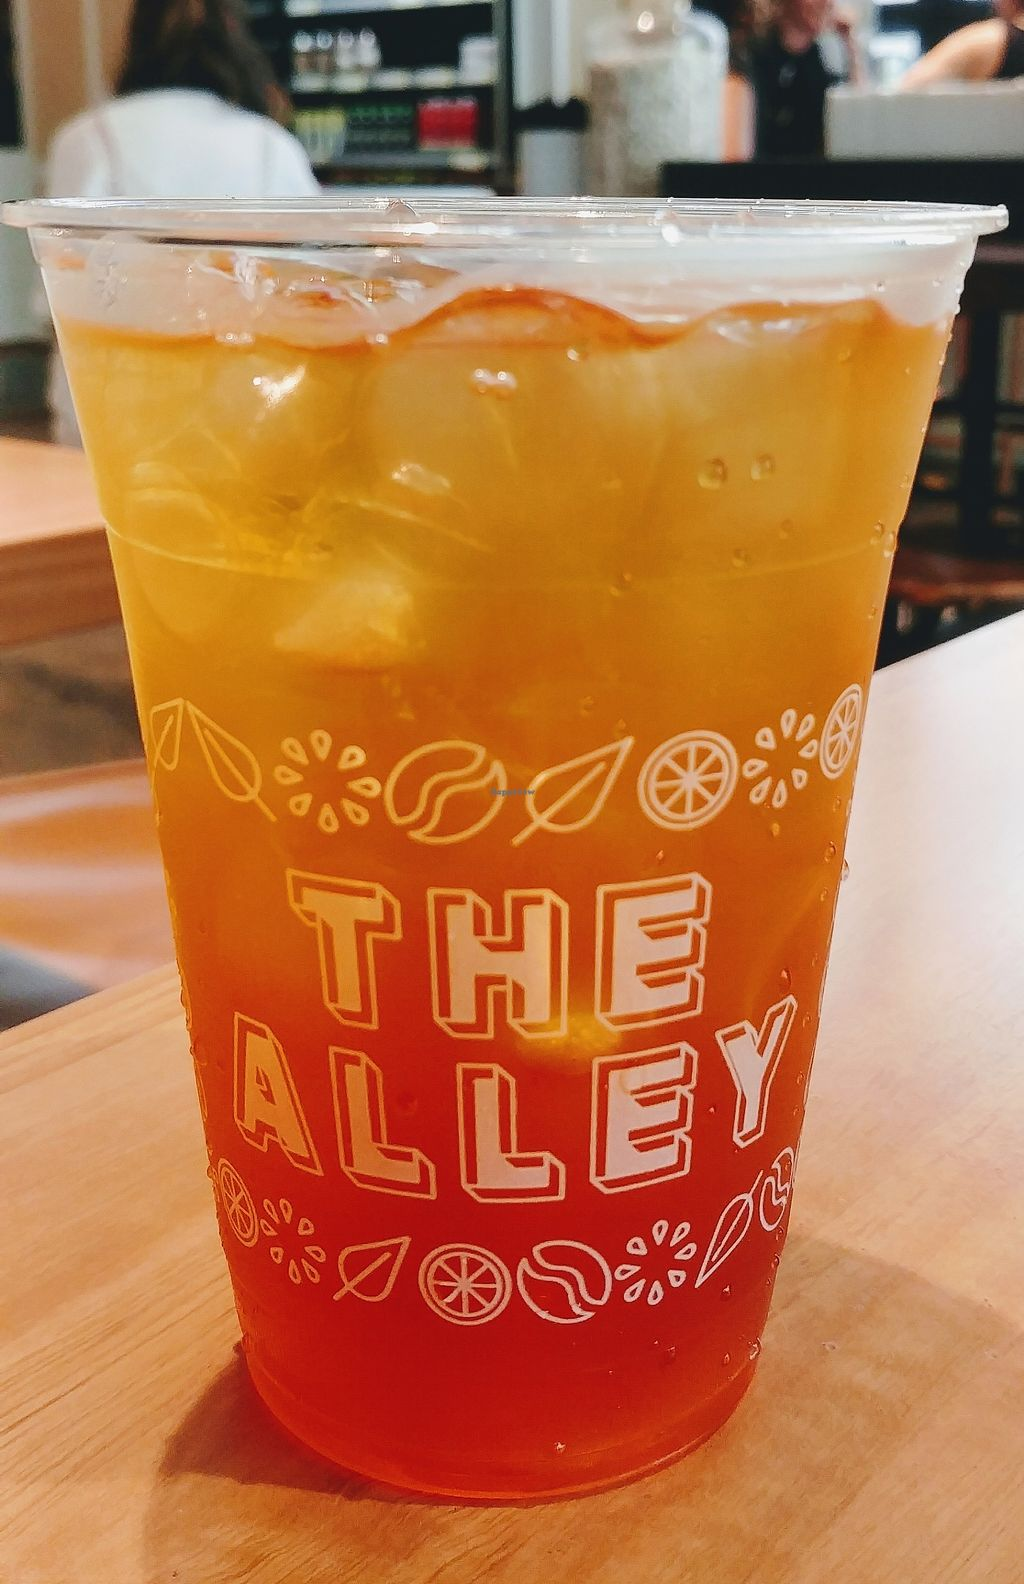 "Photo of The Alley  by <a href=""/members/profile/karlaess"">karlaess</a> <br/>Iced tea <br/> January 24, 2018  - <a href='/contact/abuse/image/90029/350449'>Report</a>"